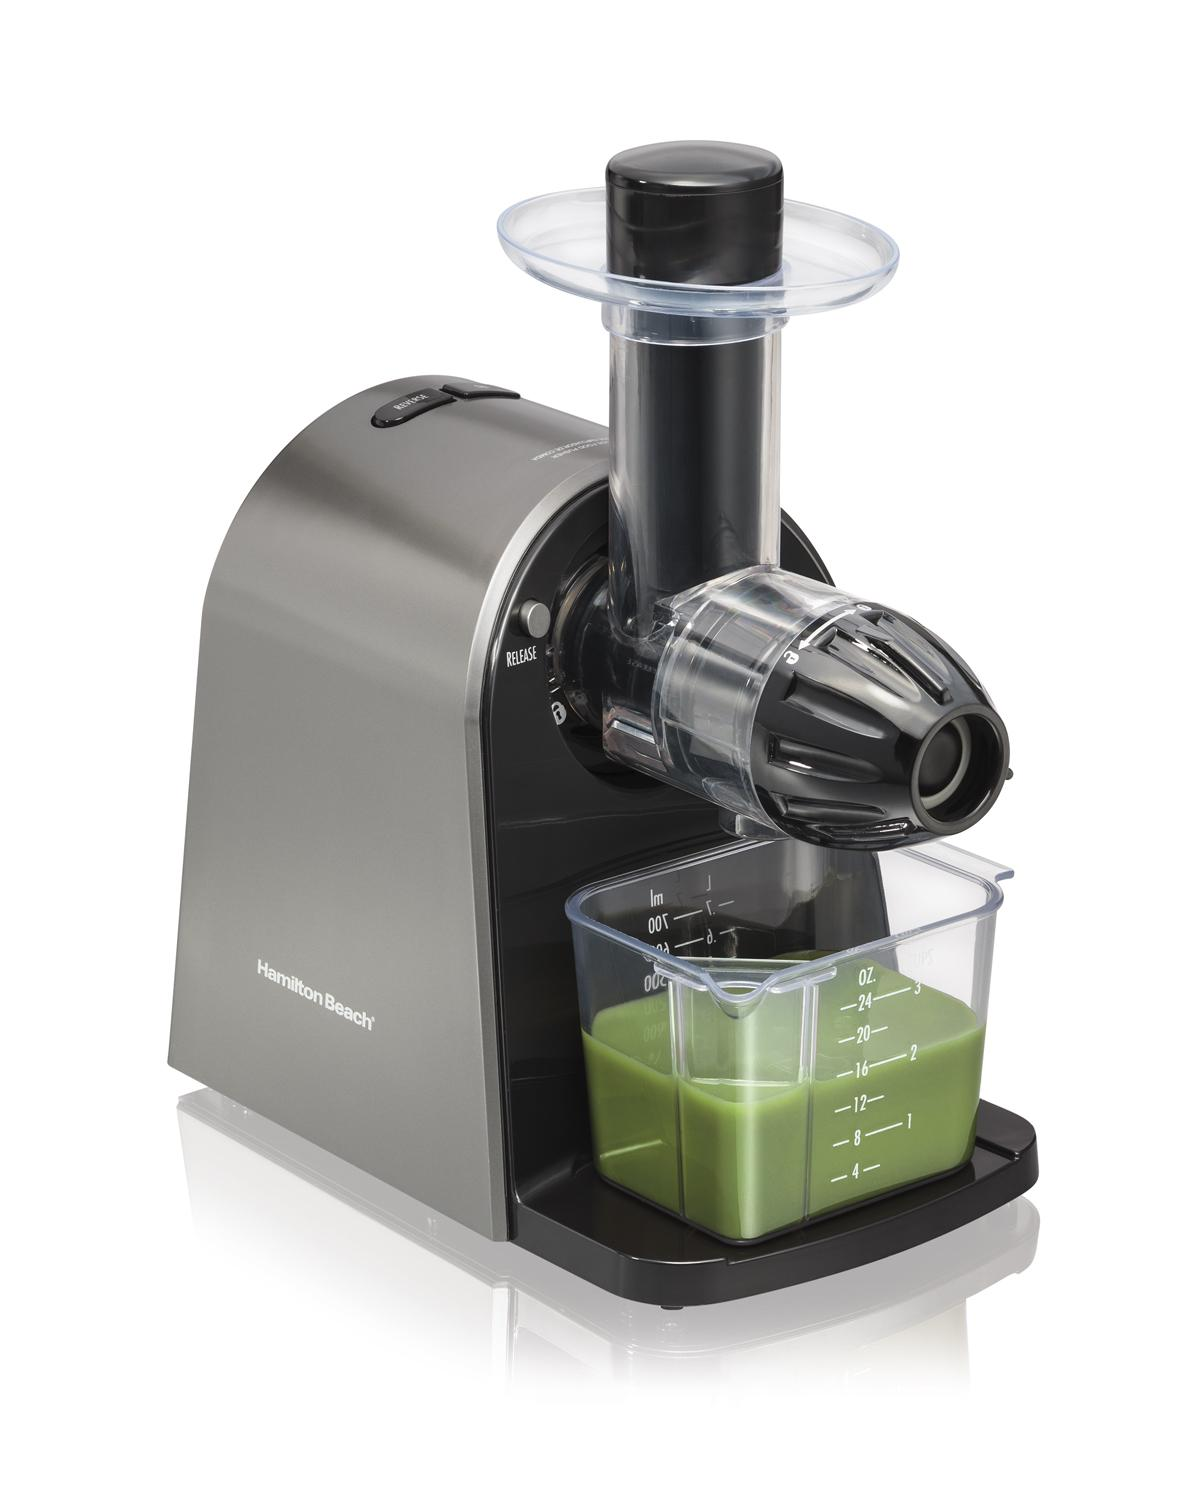 Greenis Slow Juicer Silver Review : juicer breville commercial cuisinart omega extractor slow juicers electric vegetable masticating